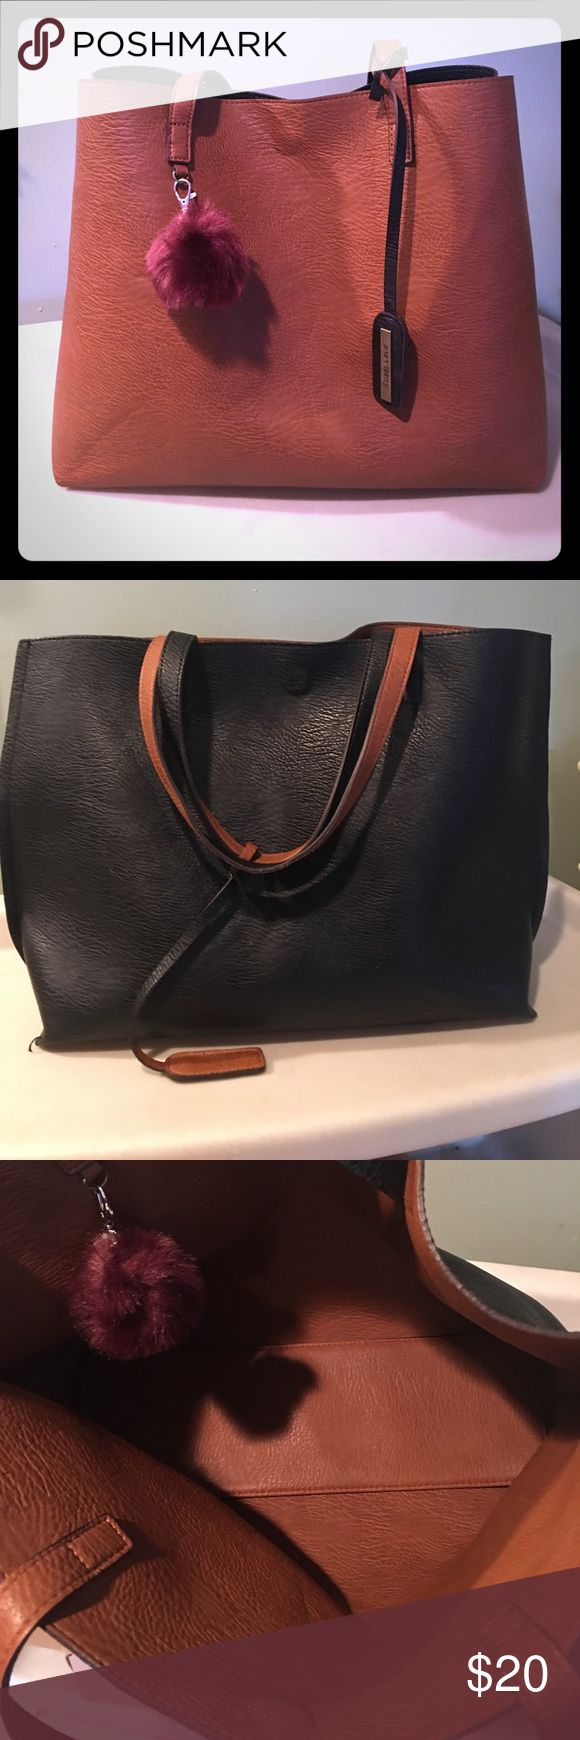 👜American Eagle Tote👜 American Eagle Tote Bag.. love this bag just haven't used it in months! Leather material so it's easy to clean.  Reversible.. so it can be black or brown! Super cute!! American Eagle Outfitters Bags Totes